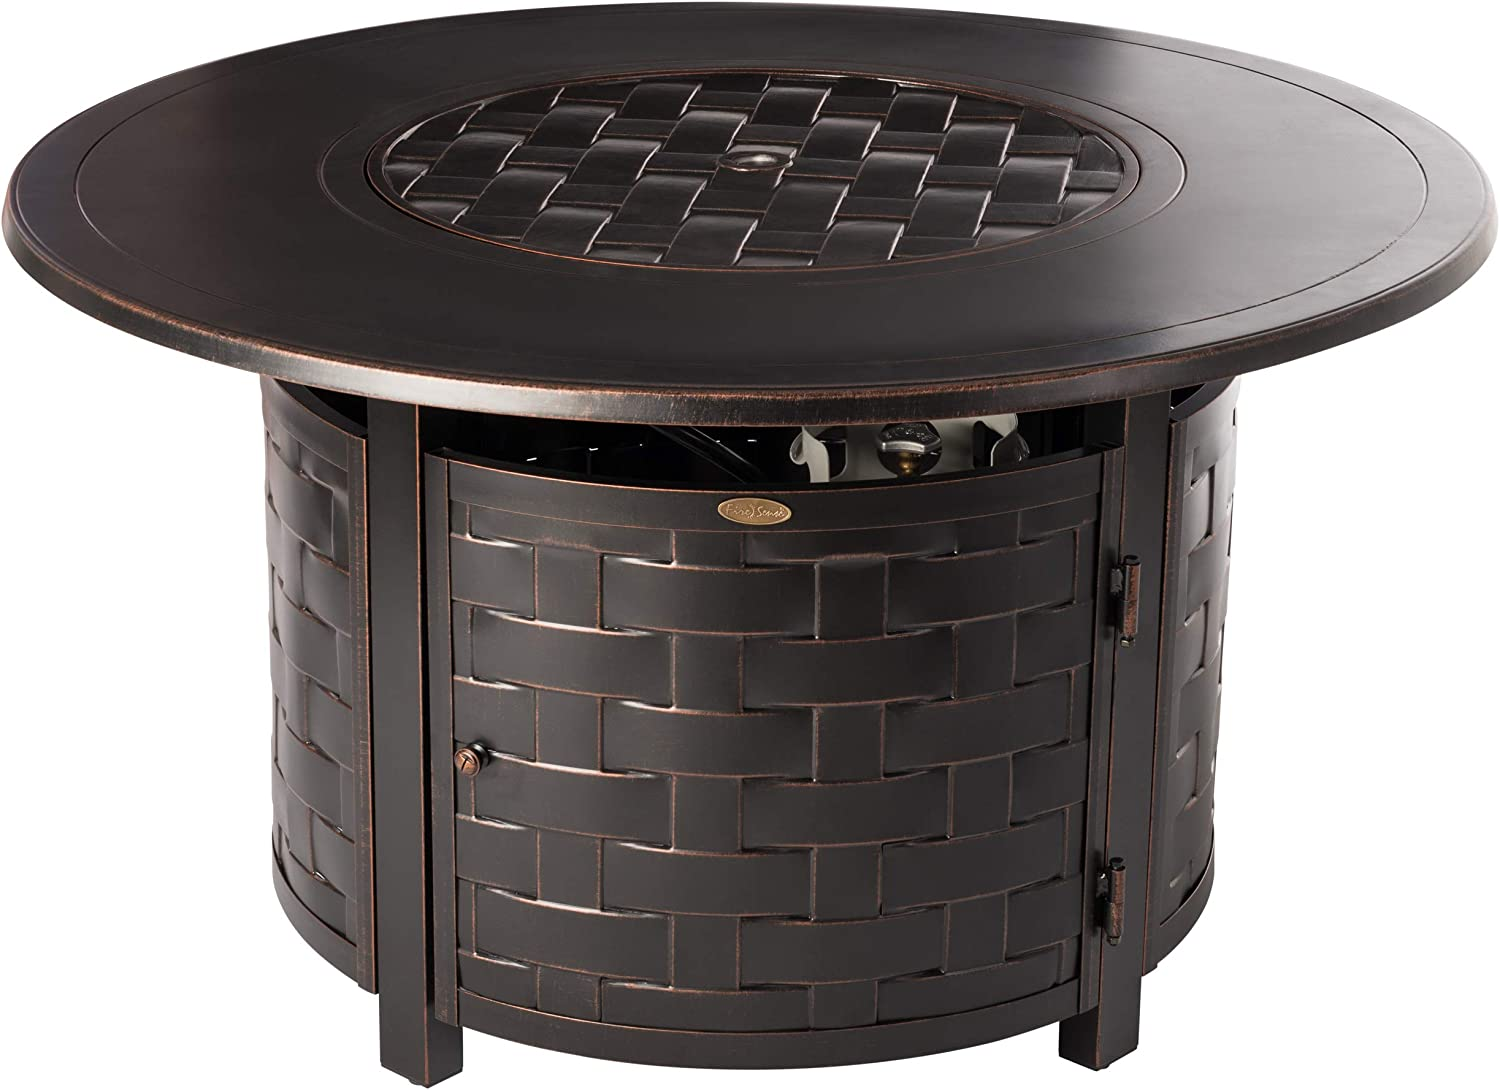 Fire Sense 62208 Perissa Fire Pit Table, Bronze